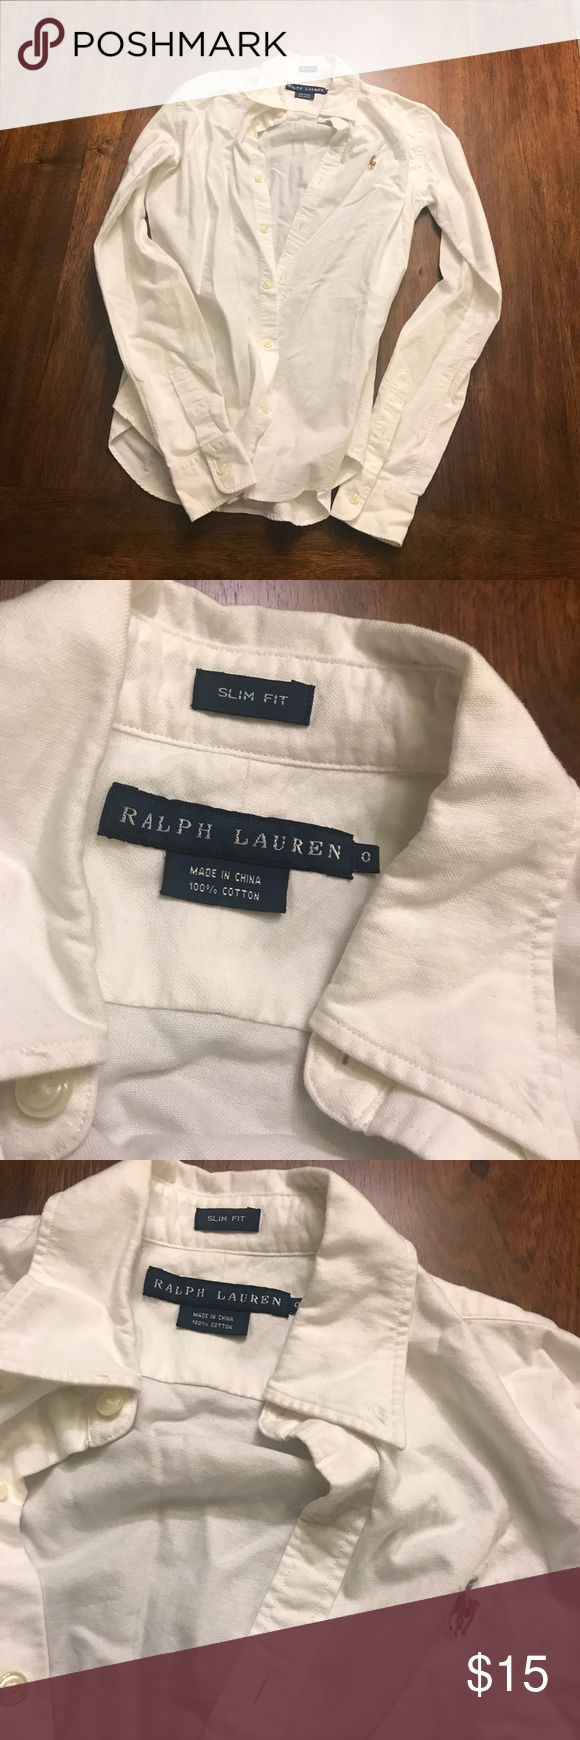 Ralph Lauren white oxford shirt women's size 0 Ralph Lauren white oxford shirt women's size 0, very wrinkly but otherwise in good condition Ralph Lauren Tops Button Down Shirts